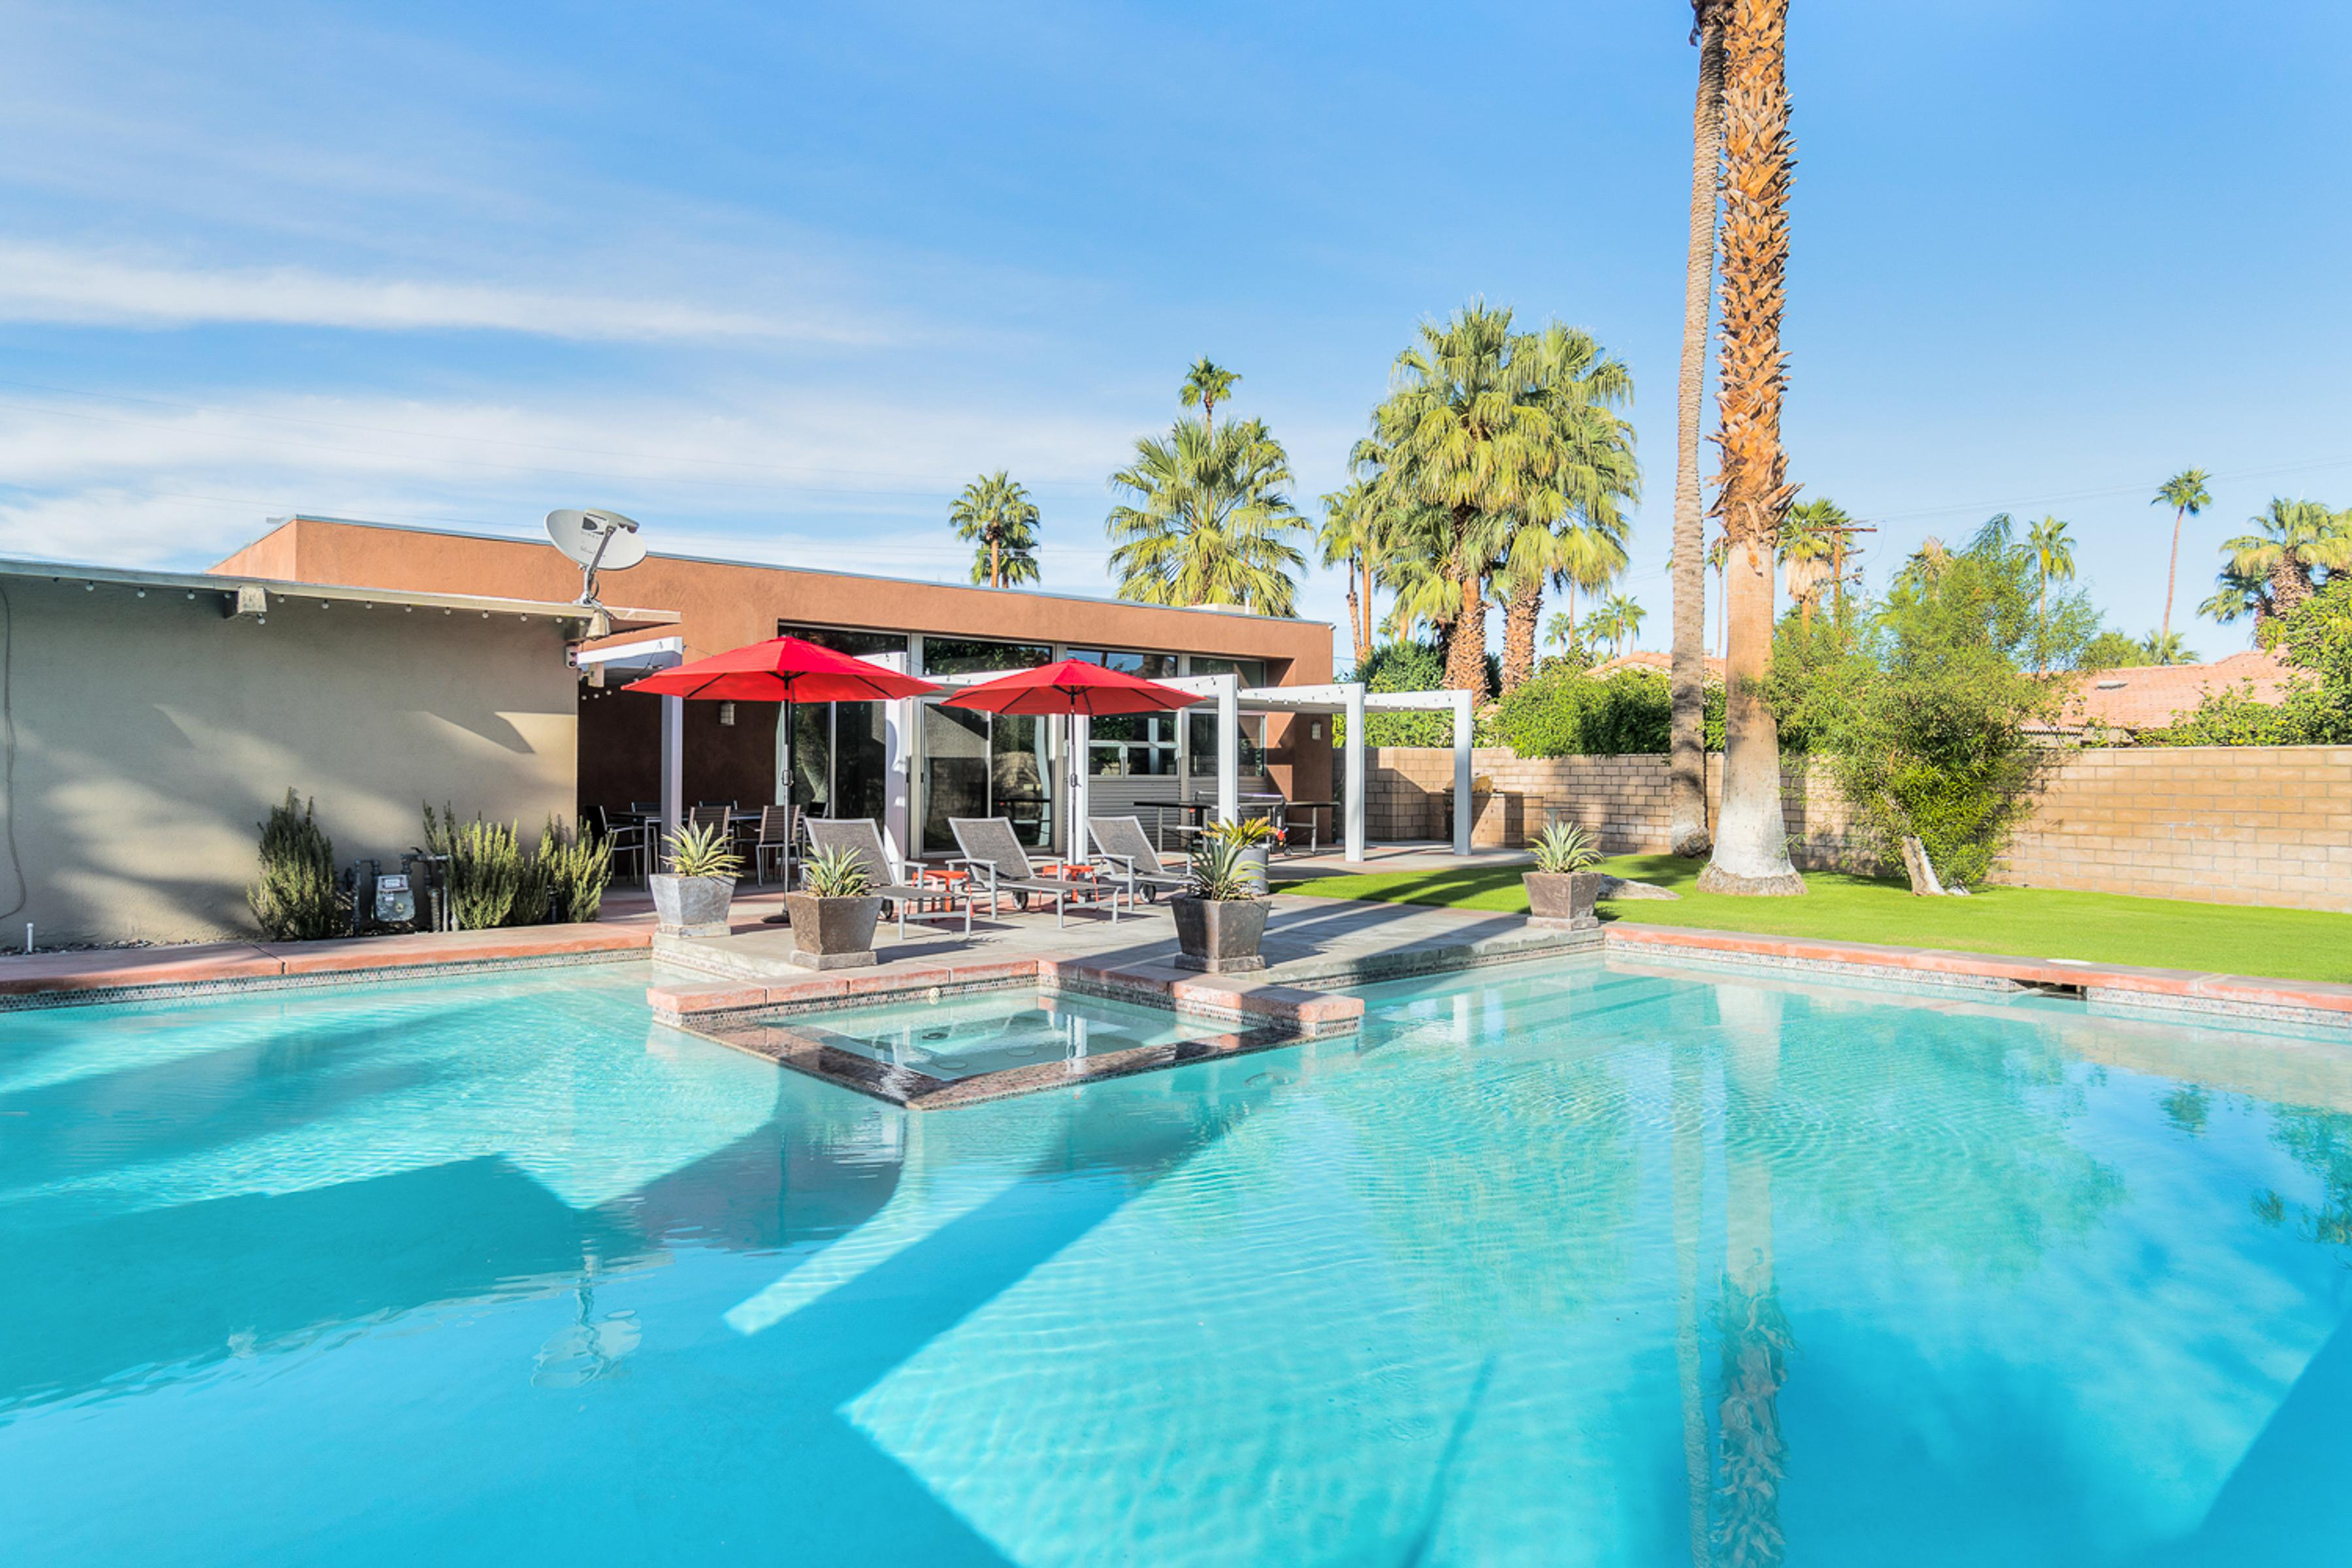 Welcome to the desert! The sunny south-facing yard features a massive resort-caliber pool with hot tub.